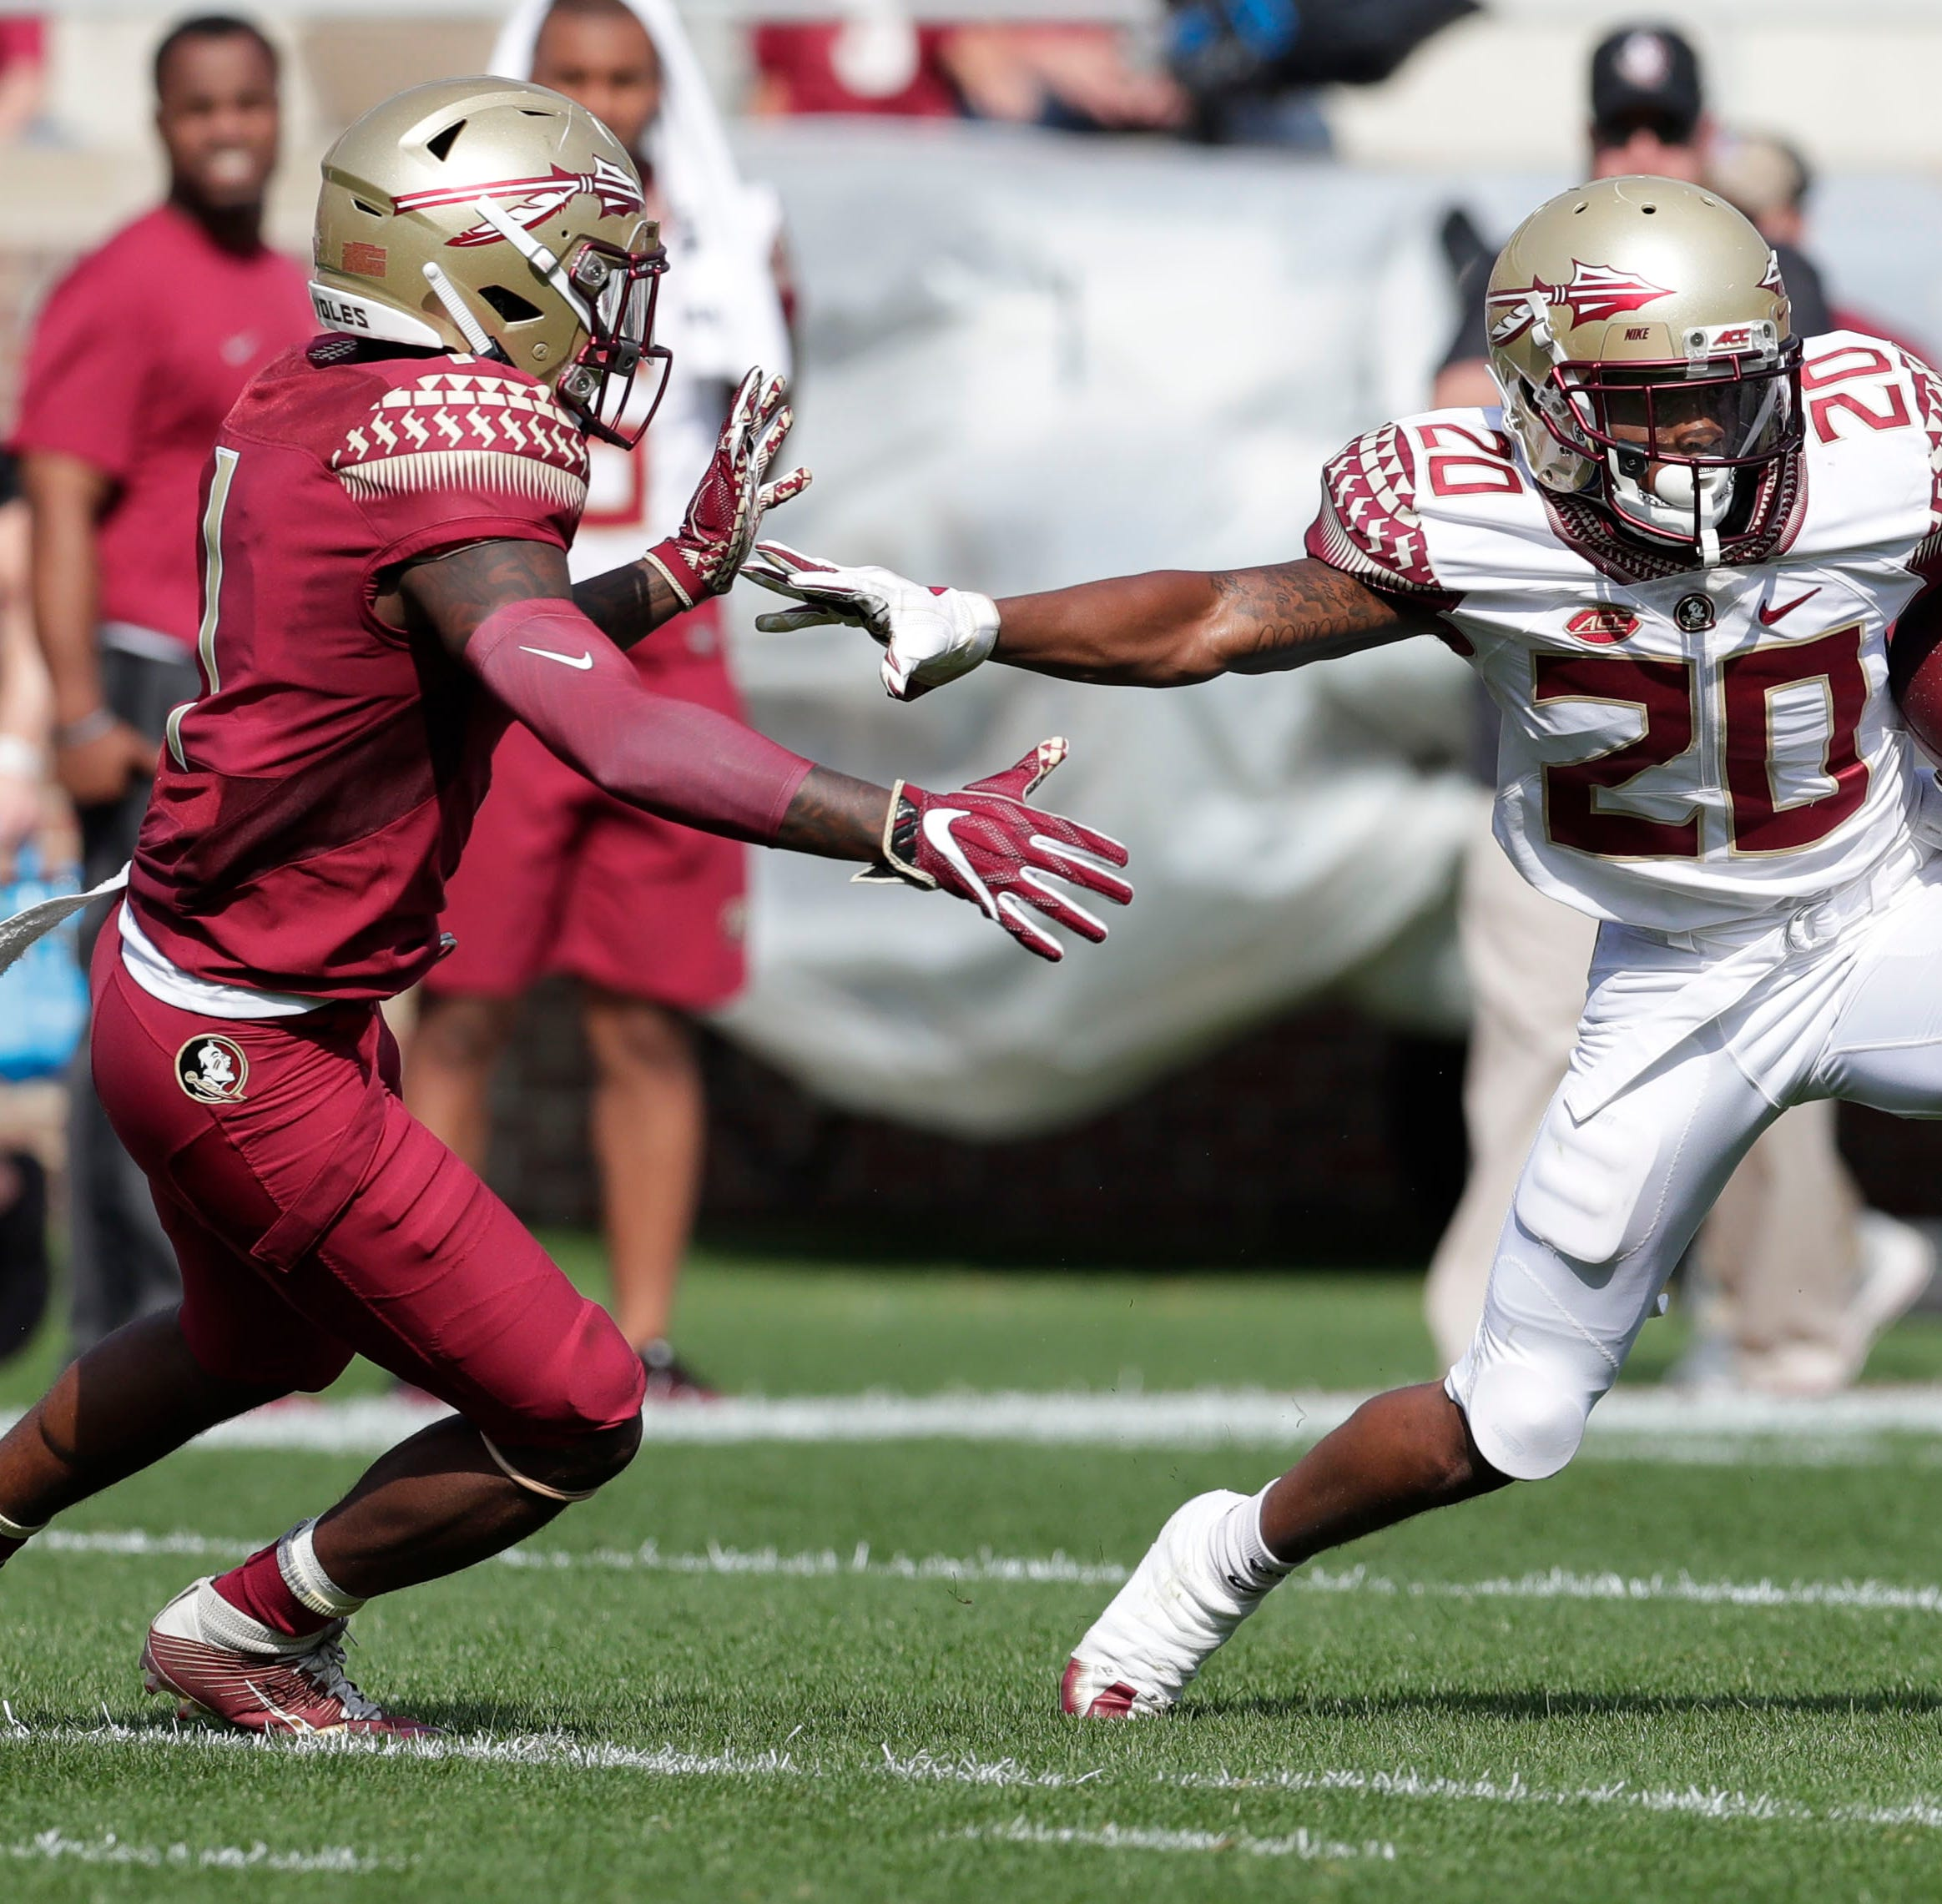 Ten takeaways from Florida State's Garnet and Gold Spring Game